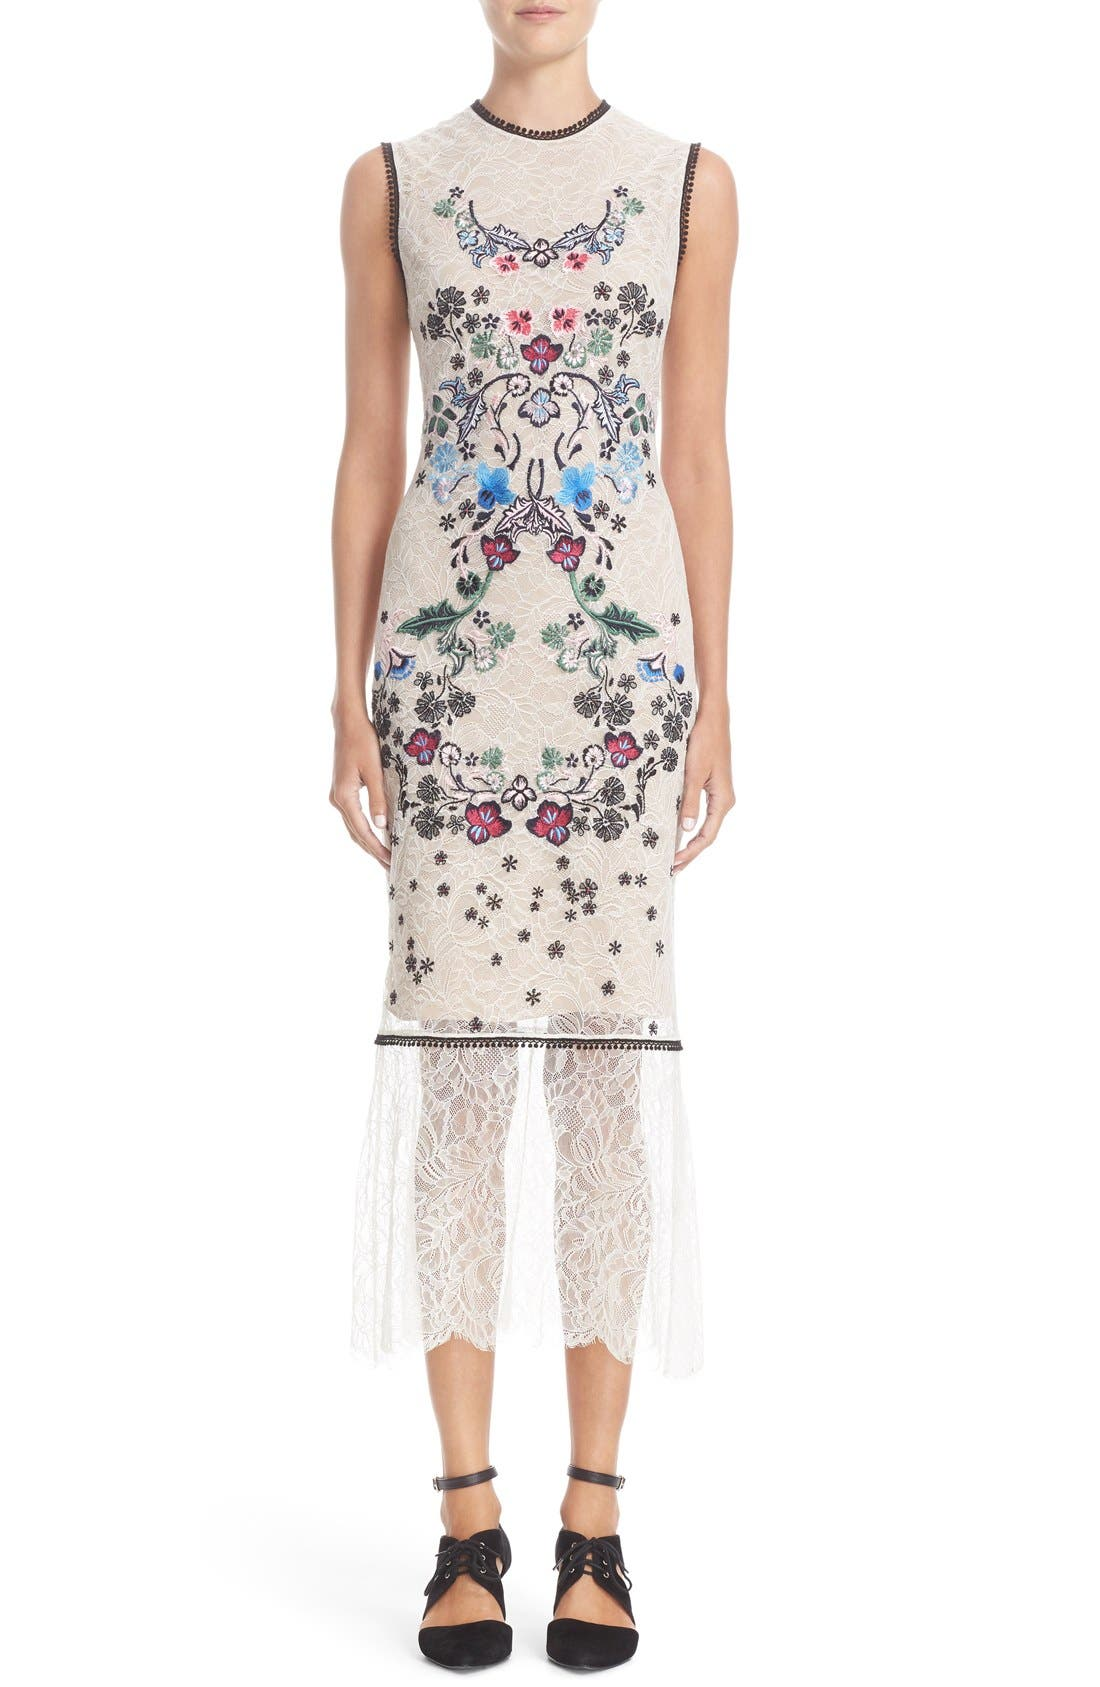 YIGAL AZROUËL Floral Embroidered Lace Dress